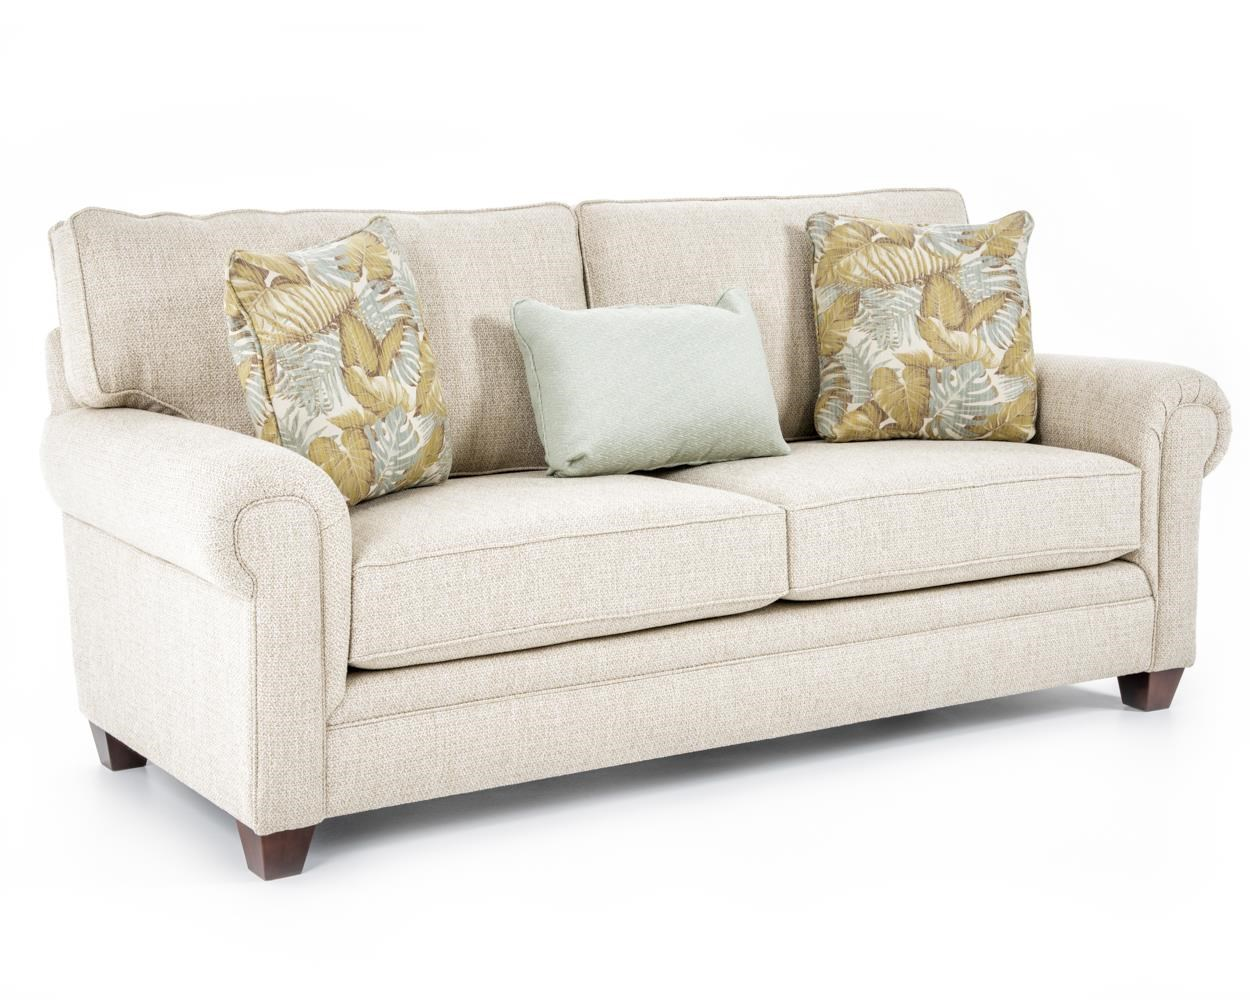 Broyhill Furniture Monica Transitional Sofa with Rolled Arms - Baer's Furniture - Sofa